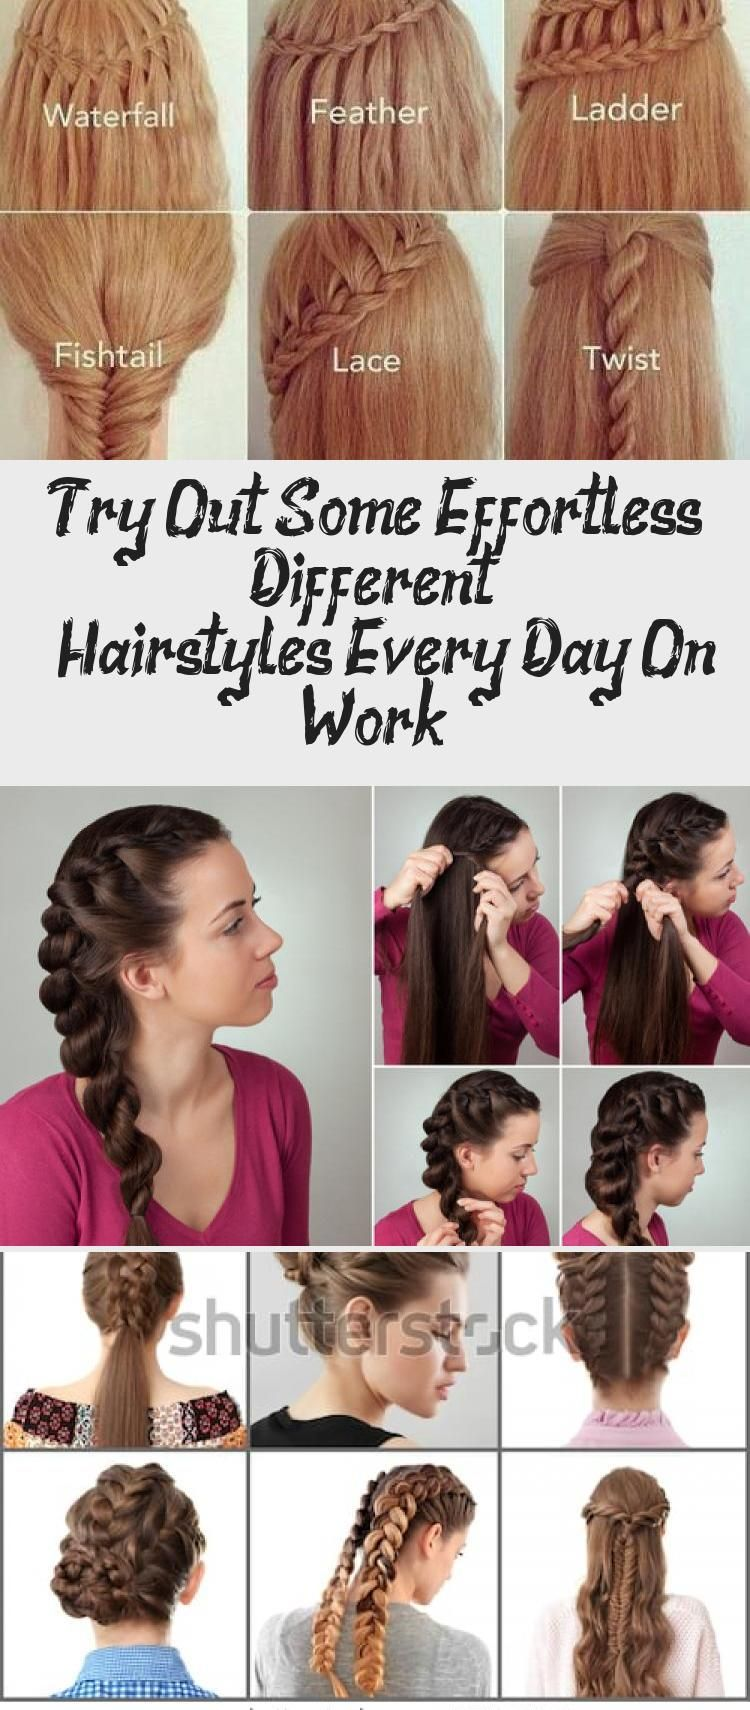 Try Out Some Effortless Different Hairstyles Every Day On Work 7 Easy Everyday Hairstyles For Each Day O In 2020 Everyday Hairstyles Different Hairstyles Hair Styles